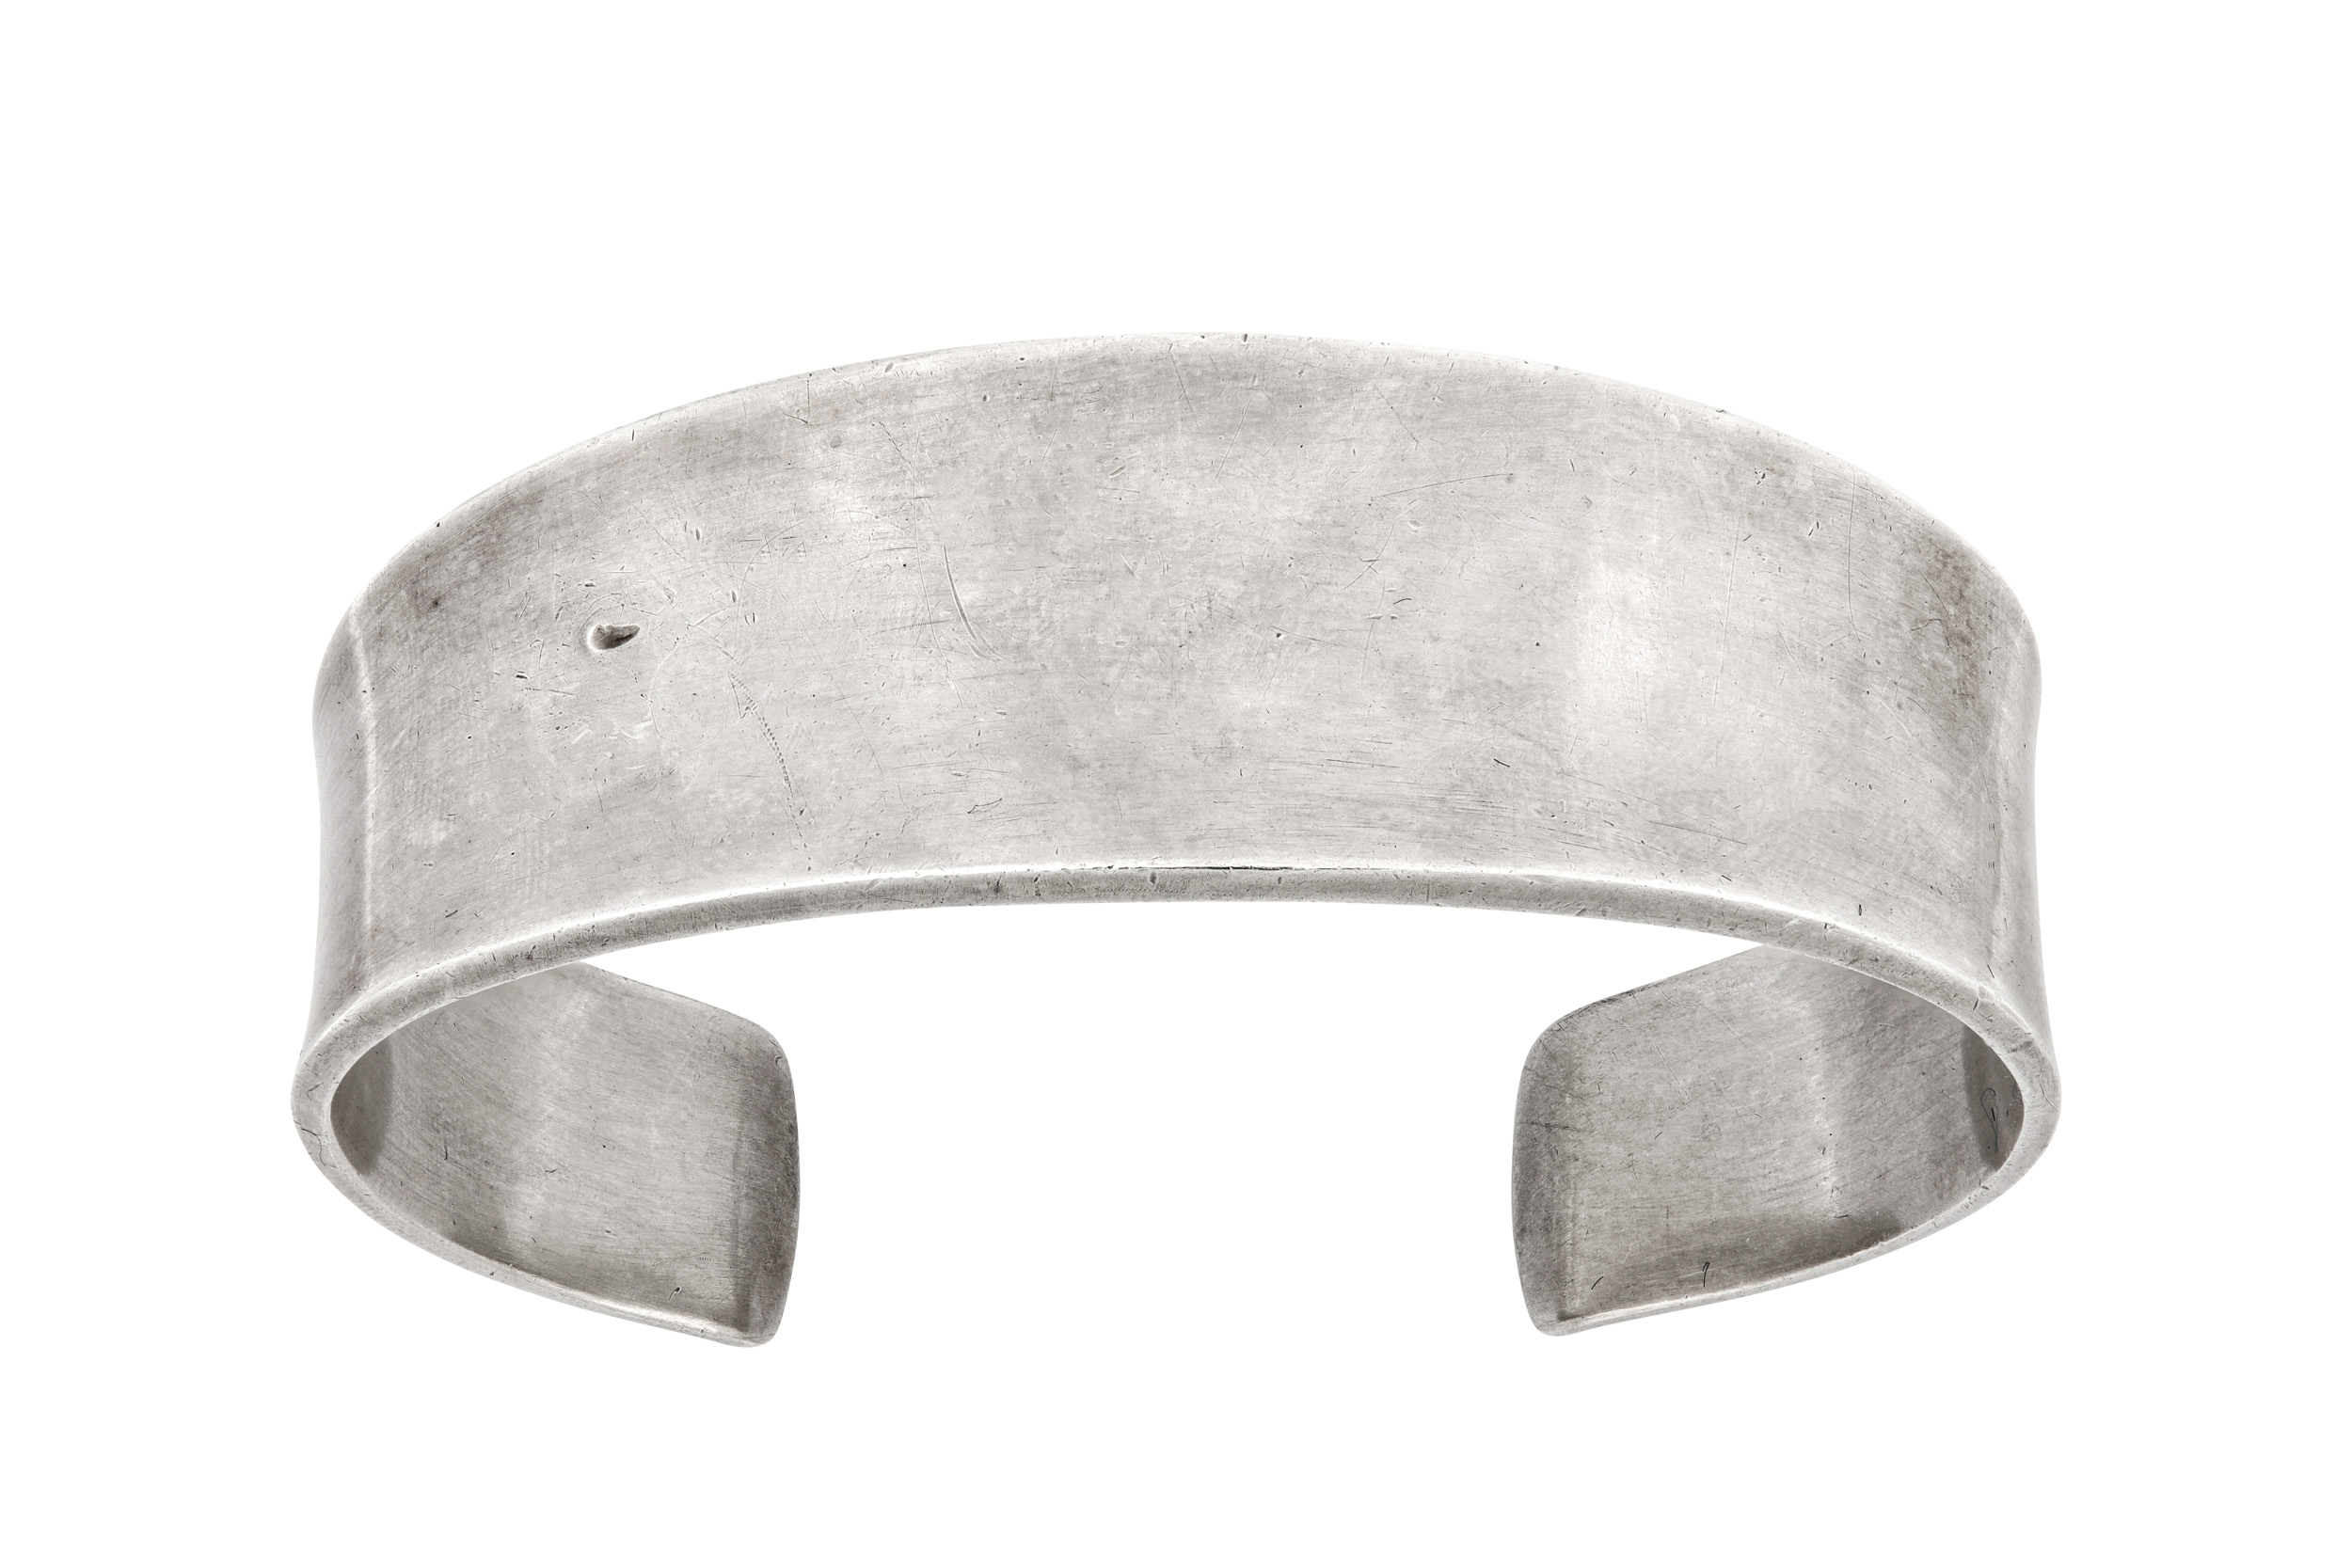 Lot 53 - A silver cuff, by Poul Hansen for Georg Jensen